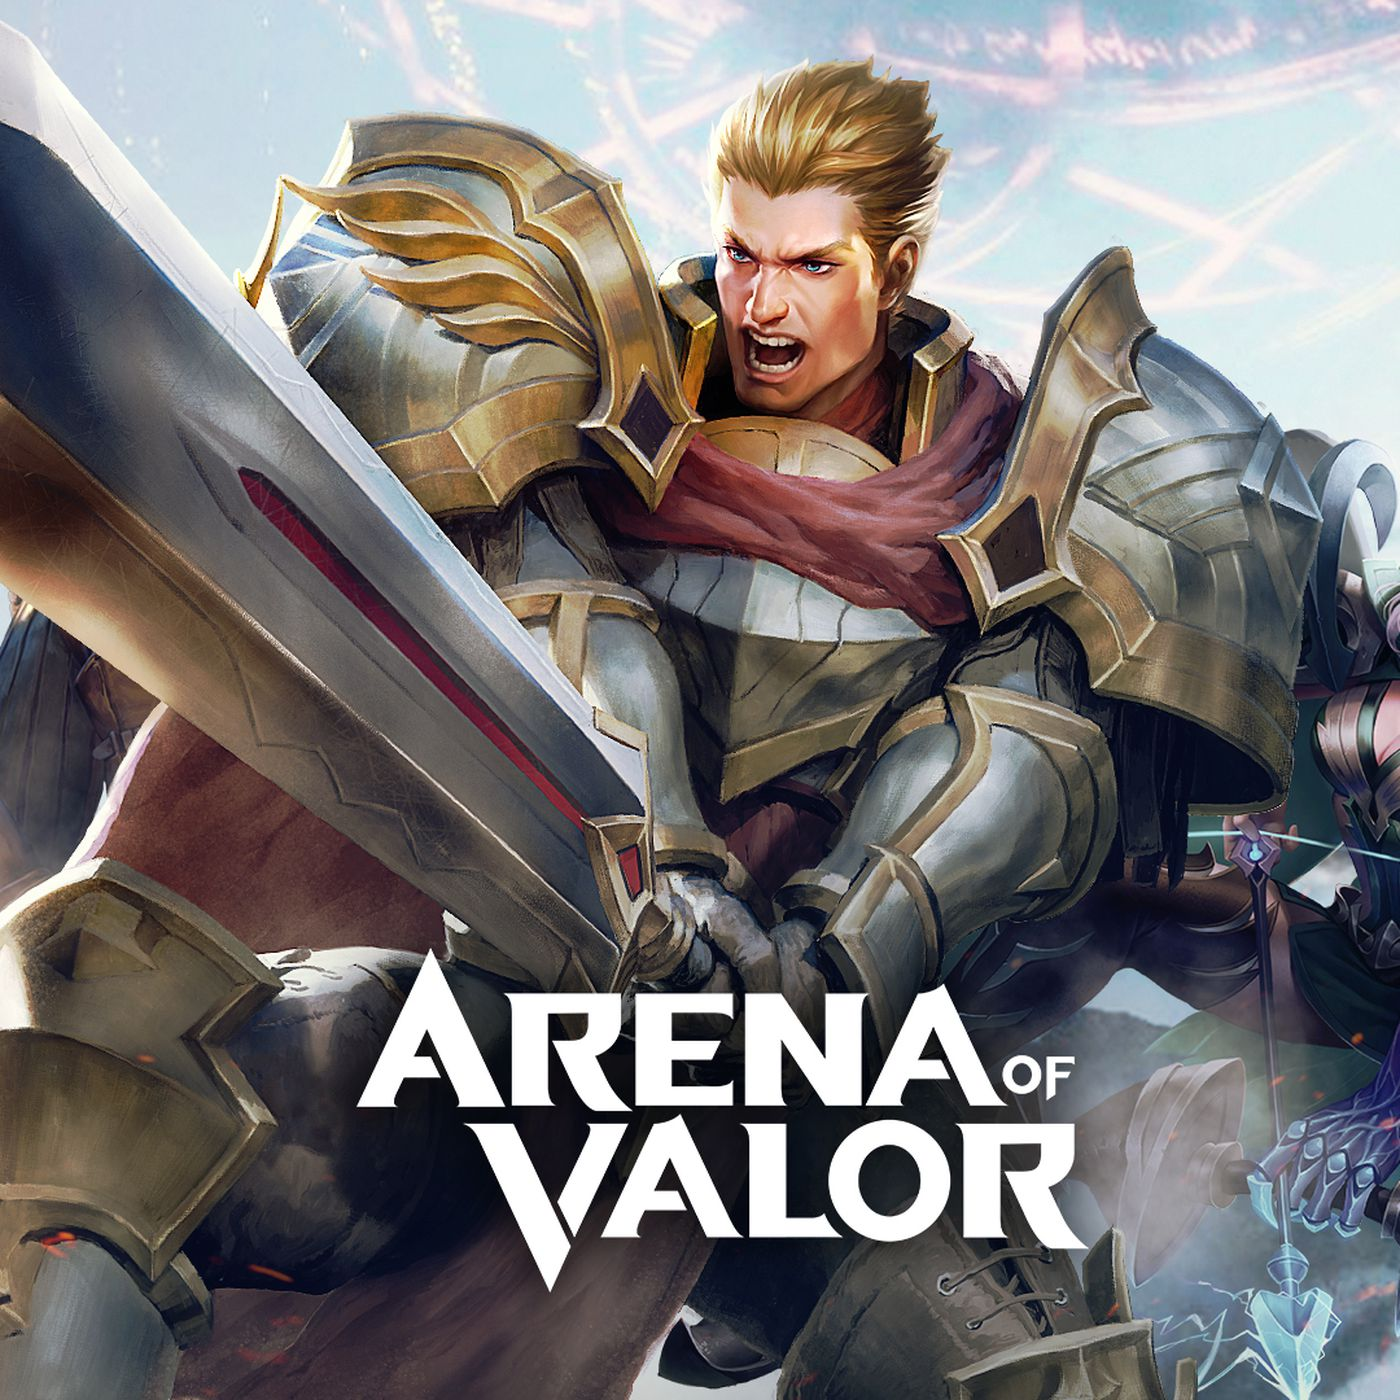 Tencent is bringing China's biggest game to the rest of the